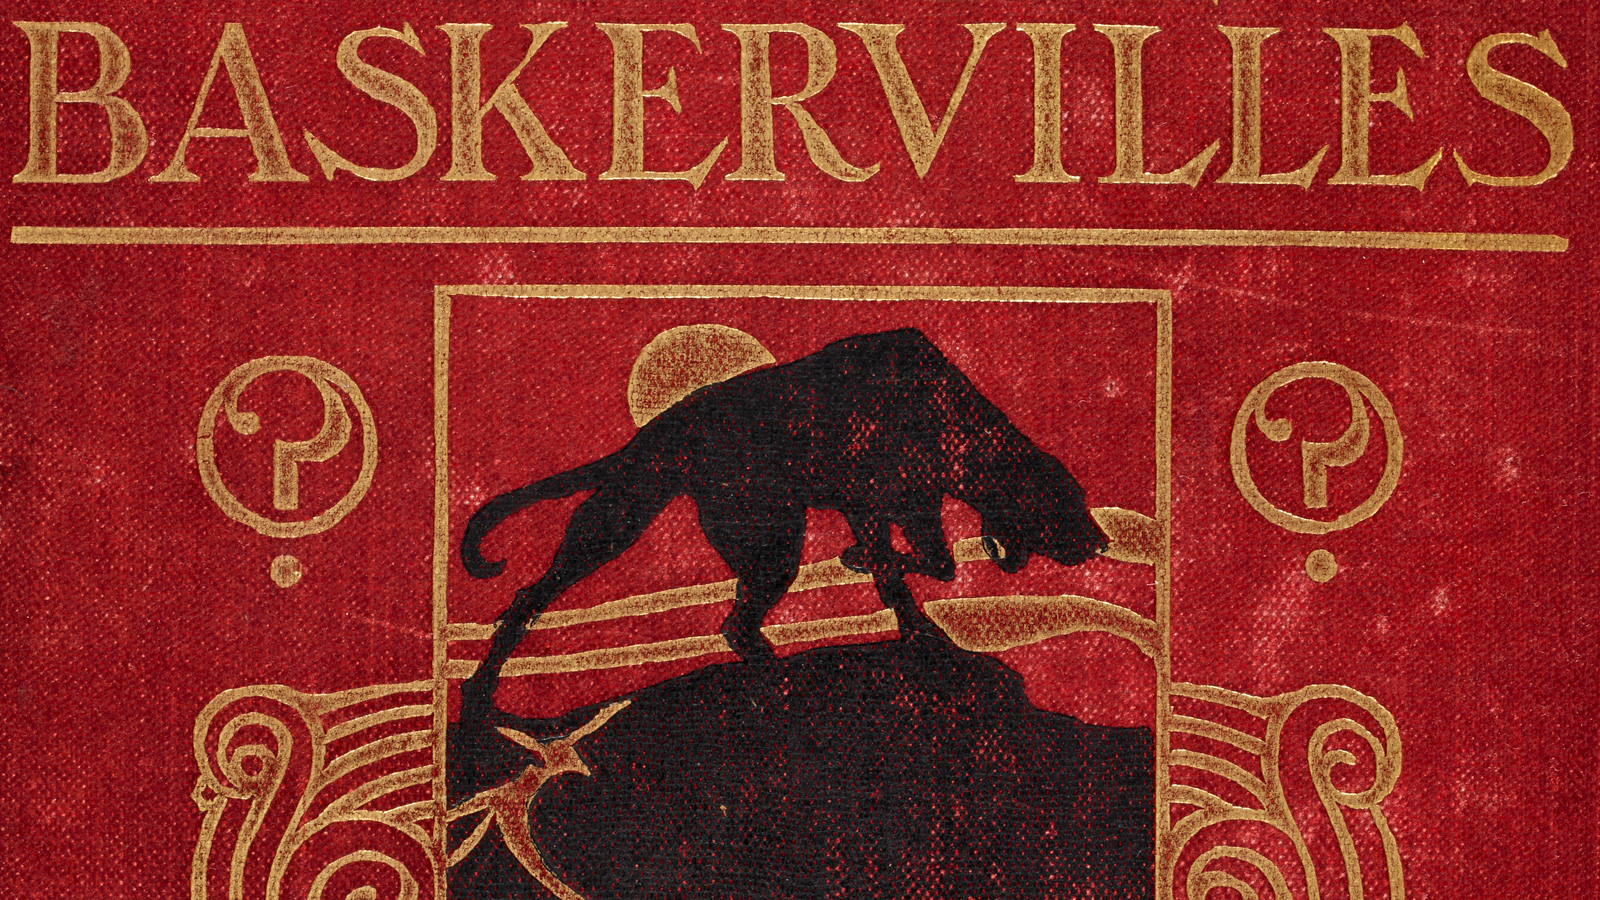 An introduction to The Hound of the Baskervilles